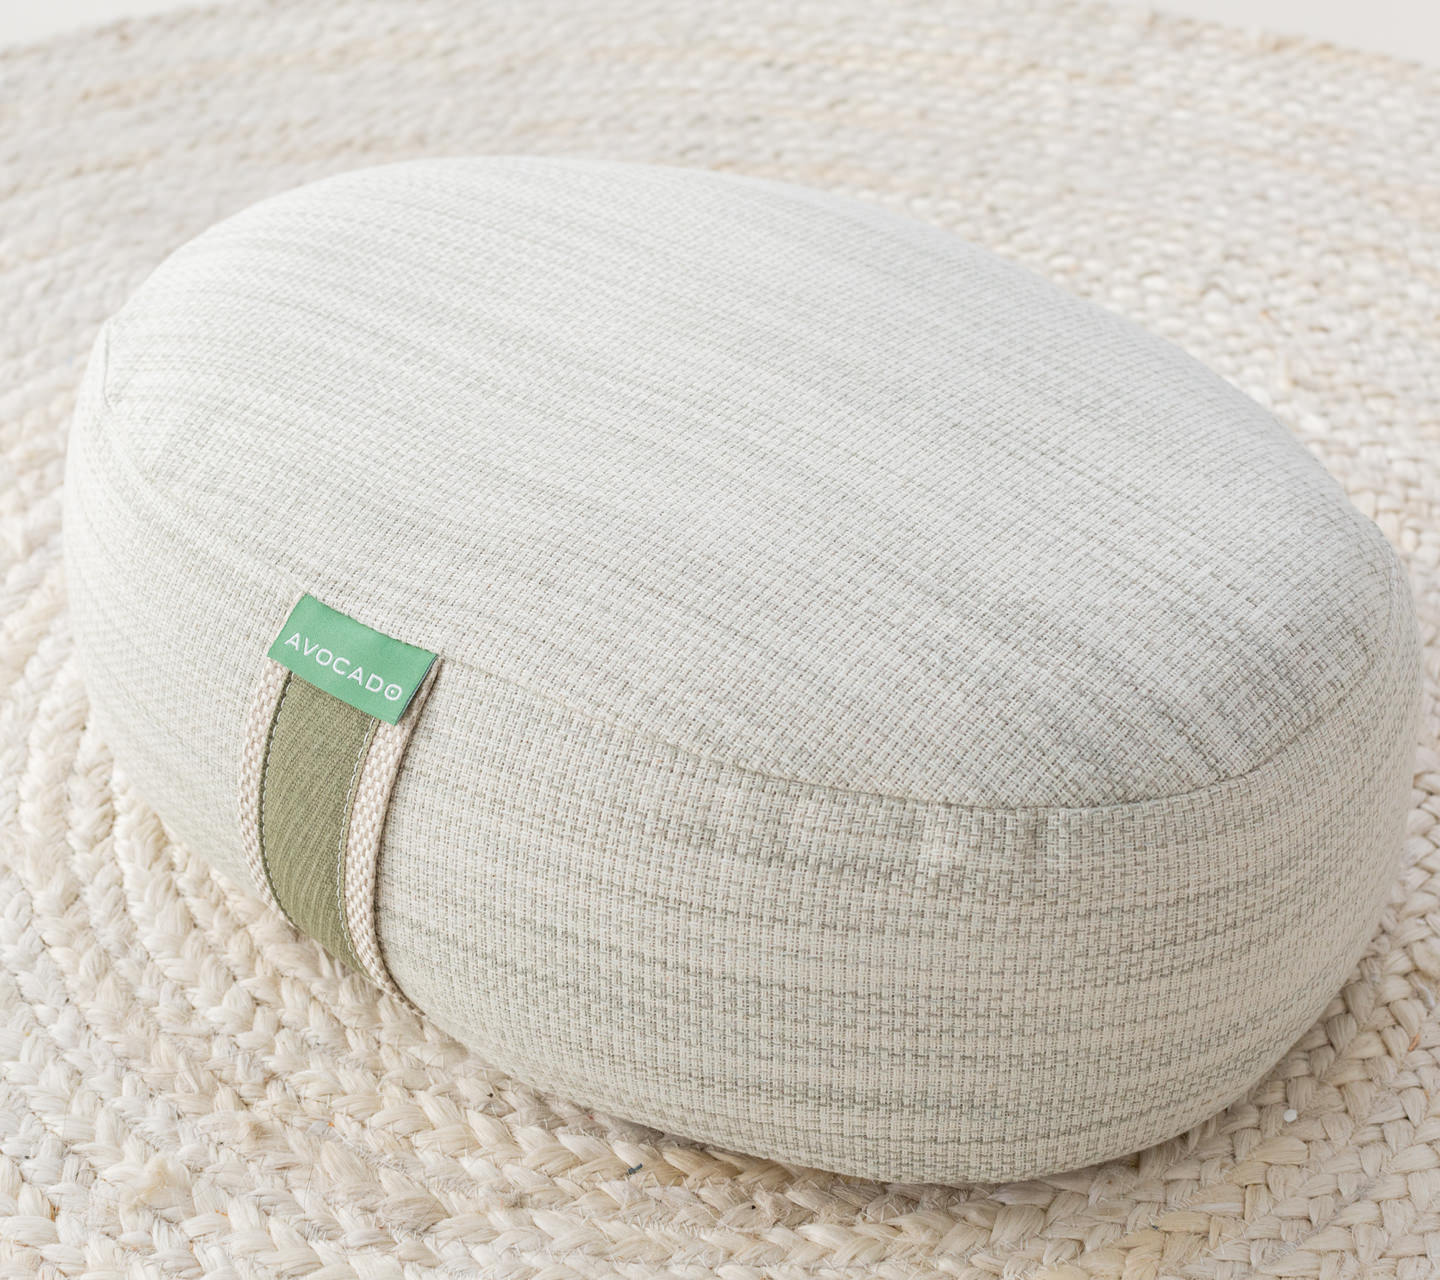 avocado living accessories meditation pillow reaview